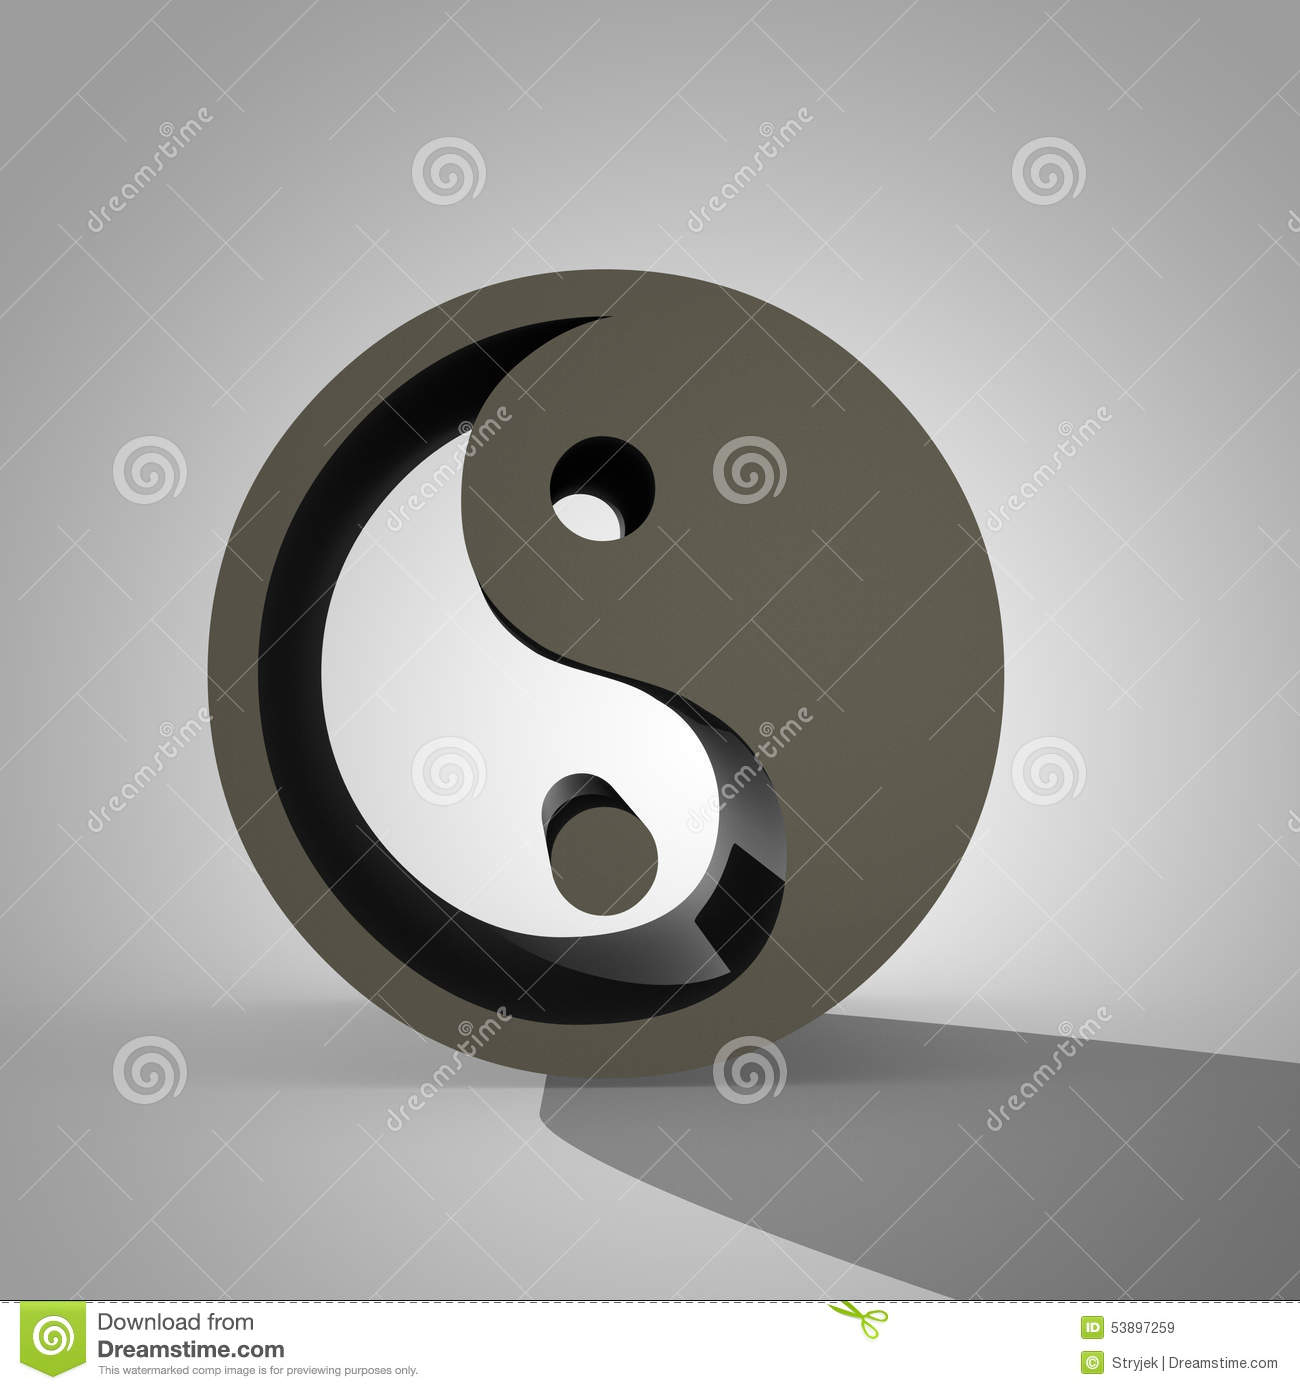 Chinese symbol of taoism yin yang stock illustration illustration 3d yin and yang sign chinese symbol of taoism royalty free stock images buycottarizona Images